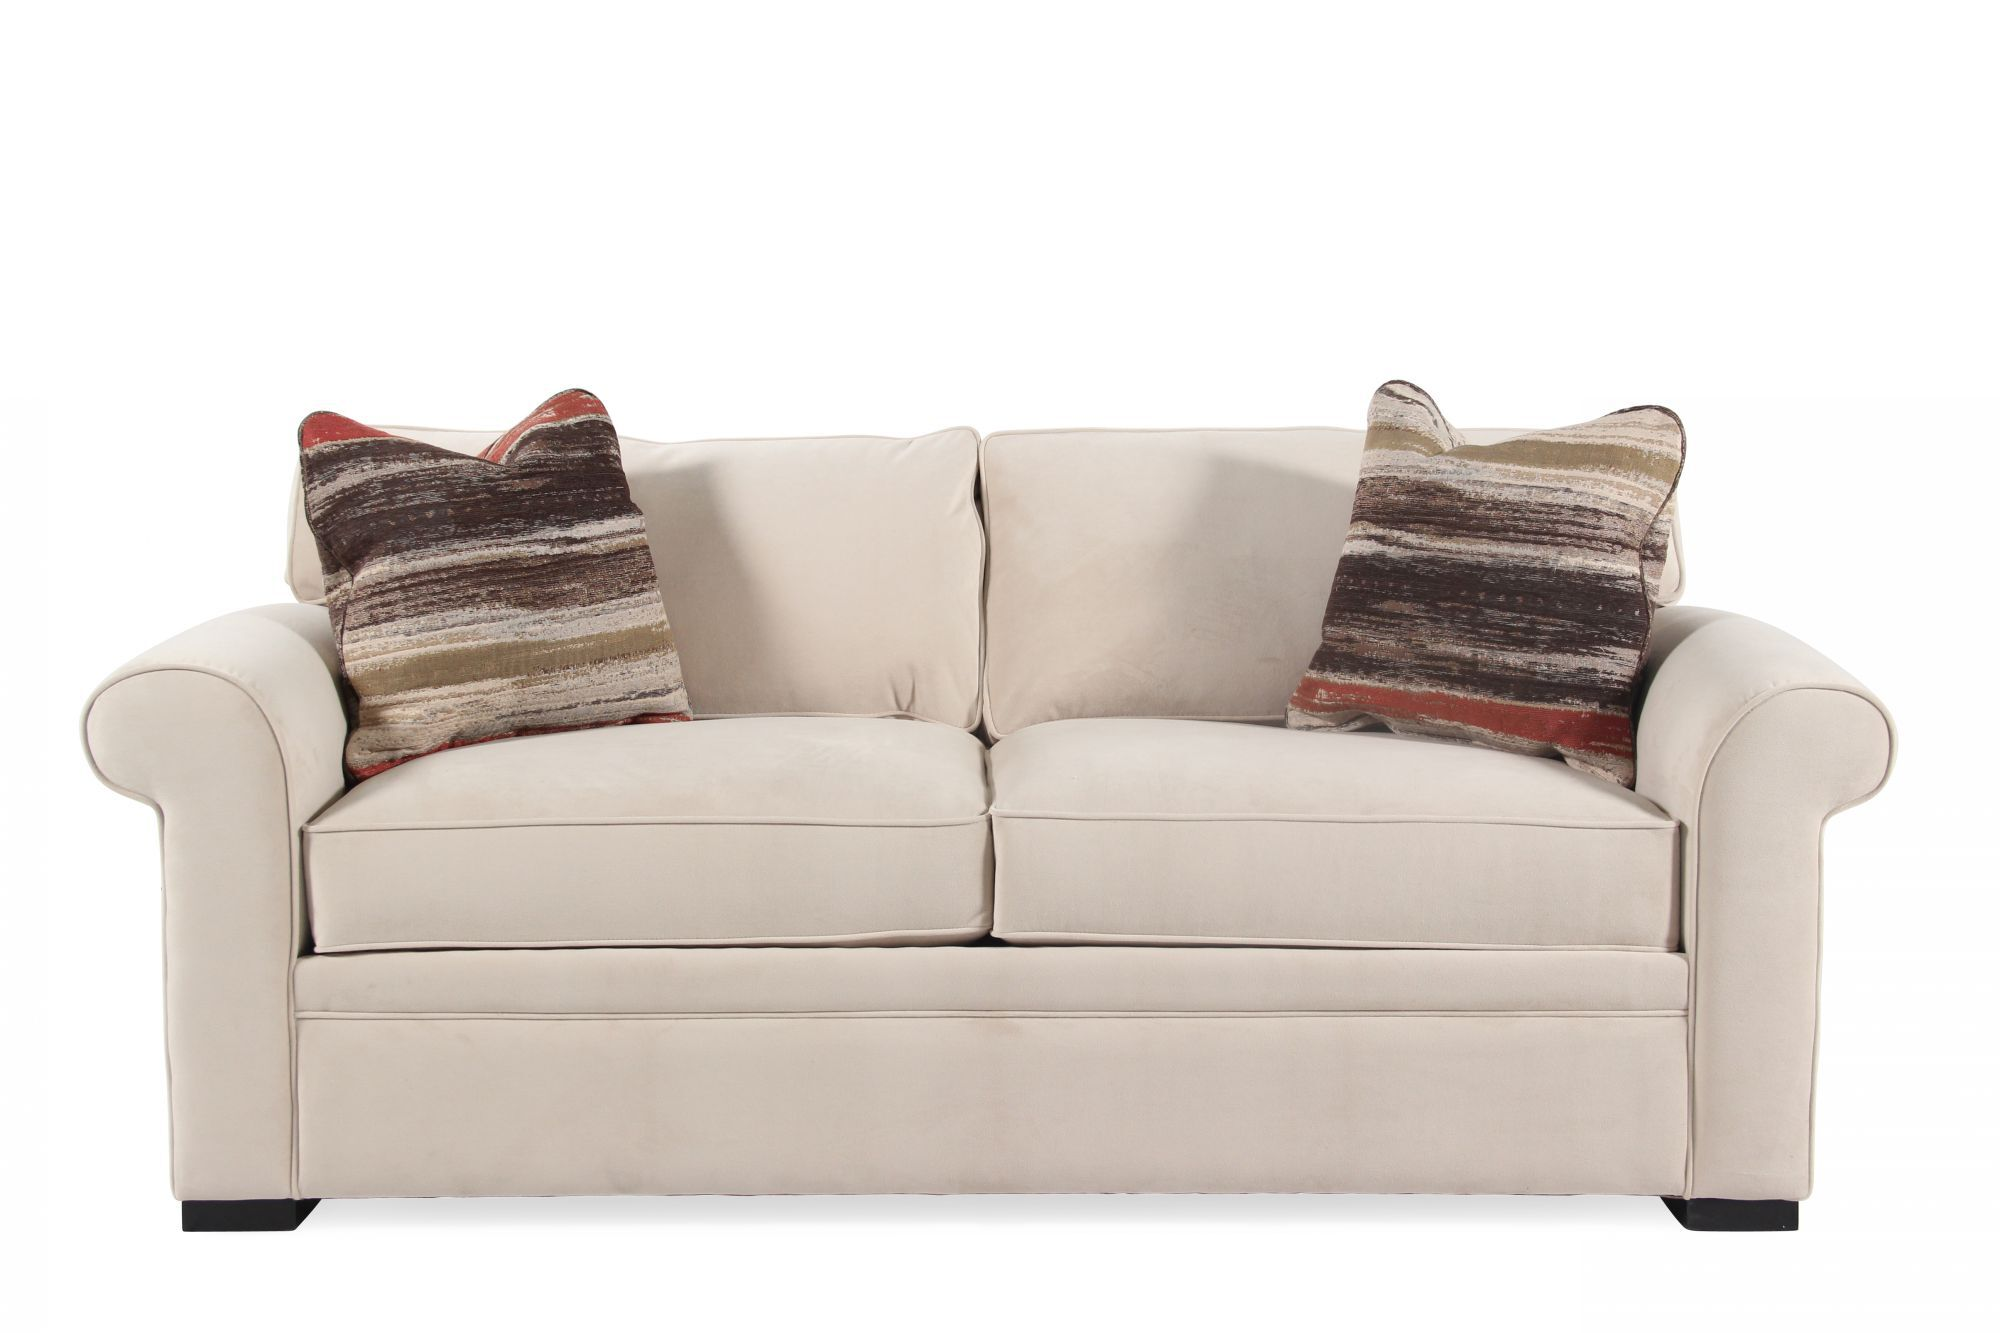 rolled arm transitional 38 sleeper sofa in cream mathis brothers rh mathisbrothers com lucan cream sleeper sofa Queen Sleeper Sofa